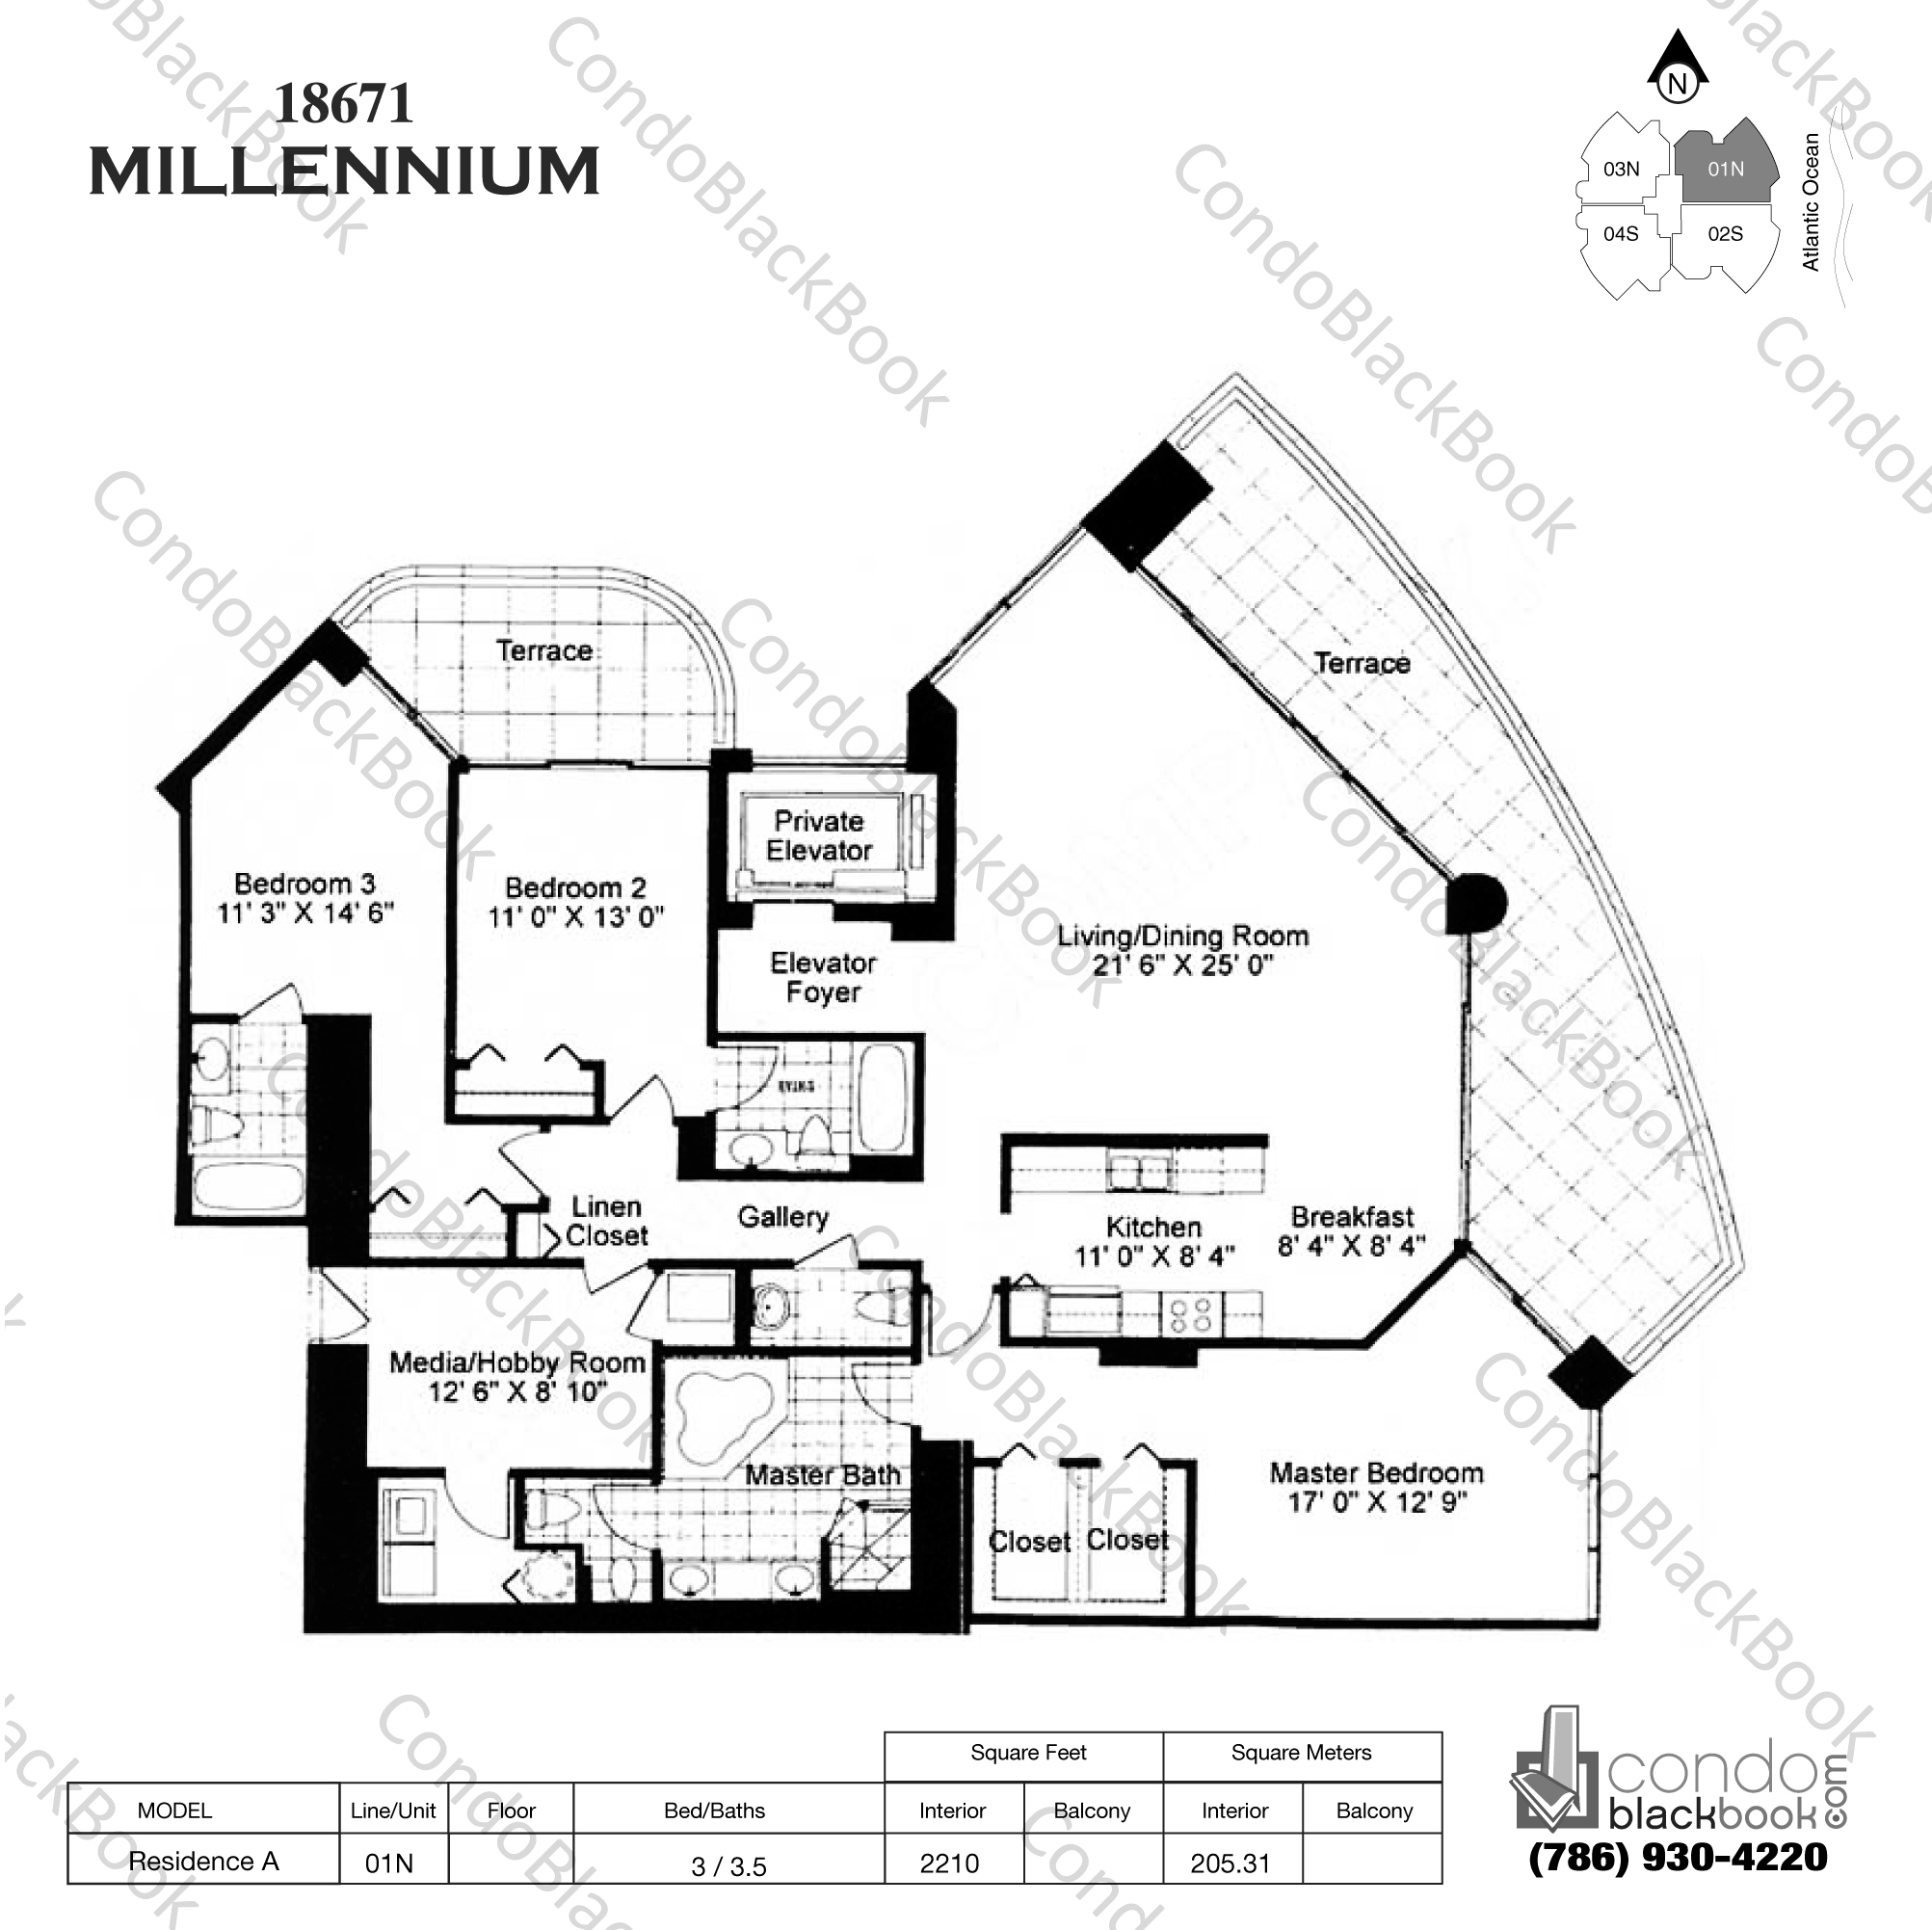 Floor plan for Millennium Sunny Isles Beach, model Res. AN, line 01, 3 / 3.5 bedrooms, 2210 sq ft